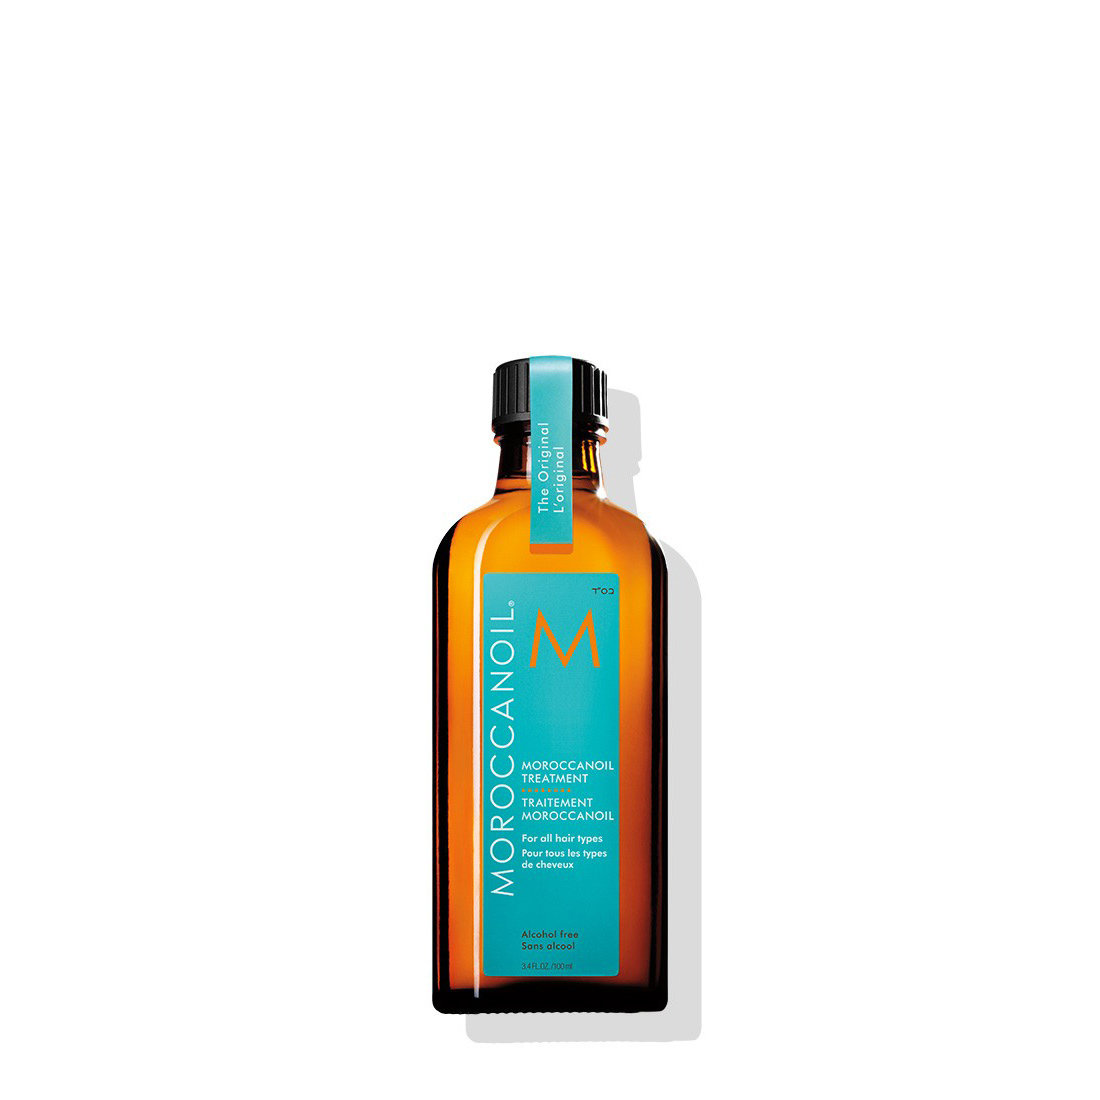 Moroccanoil Treatment 100 ml | Tratamiento Moroccanoil